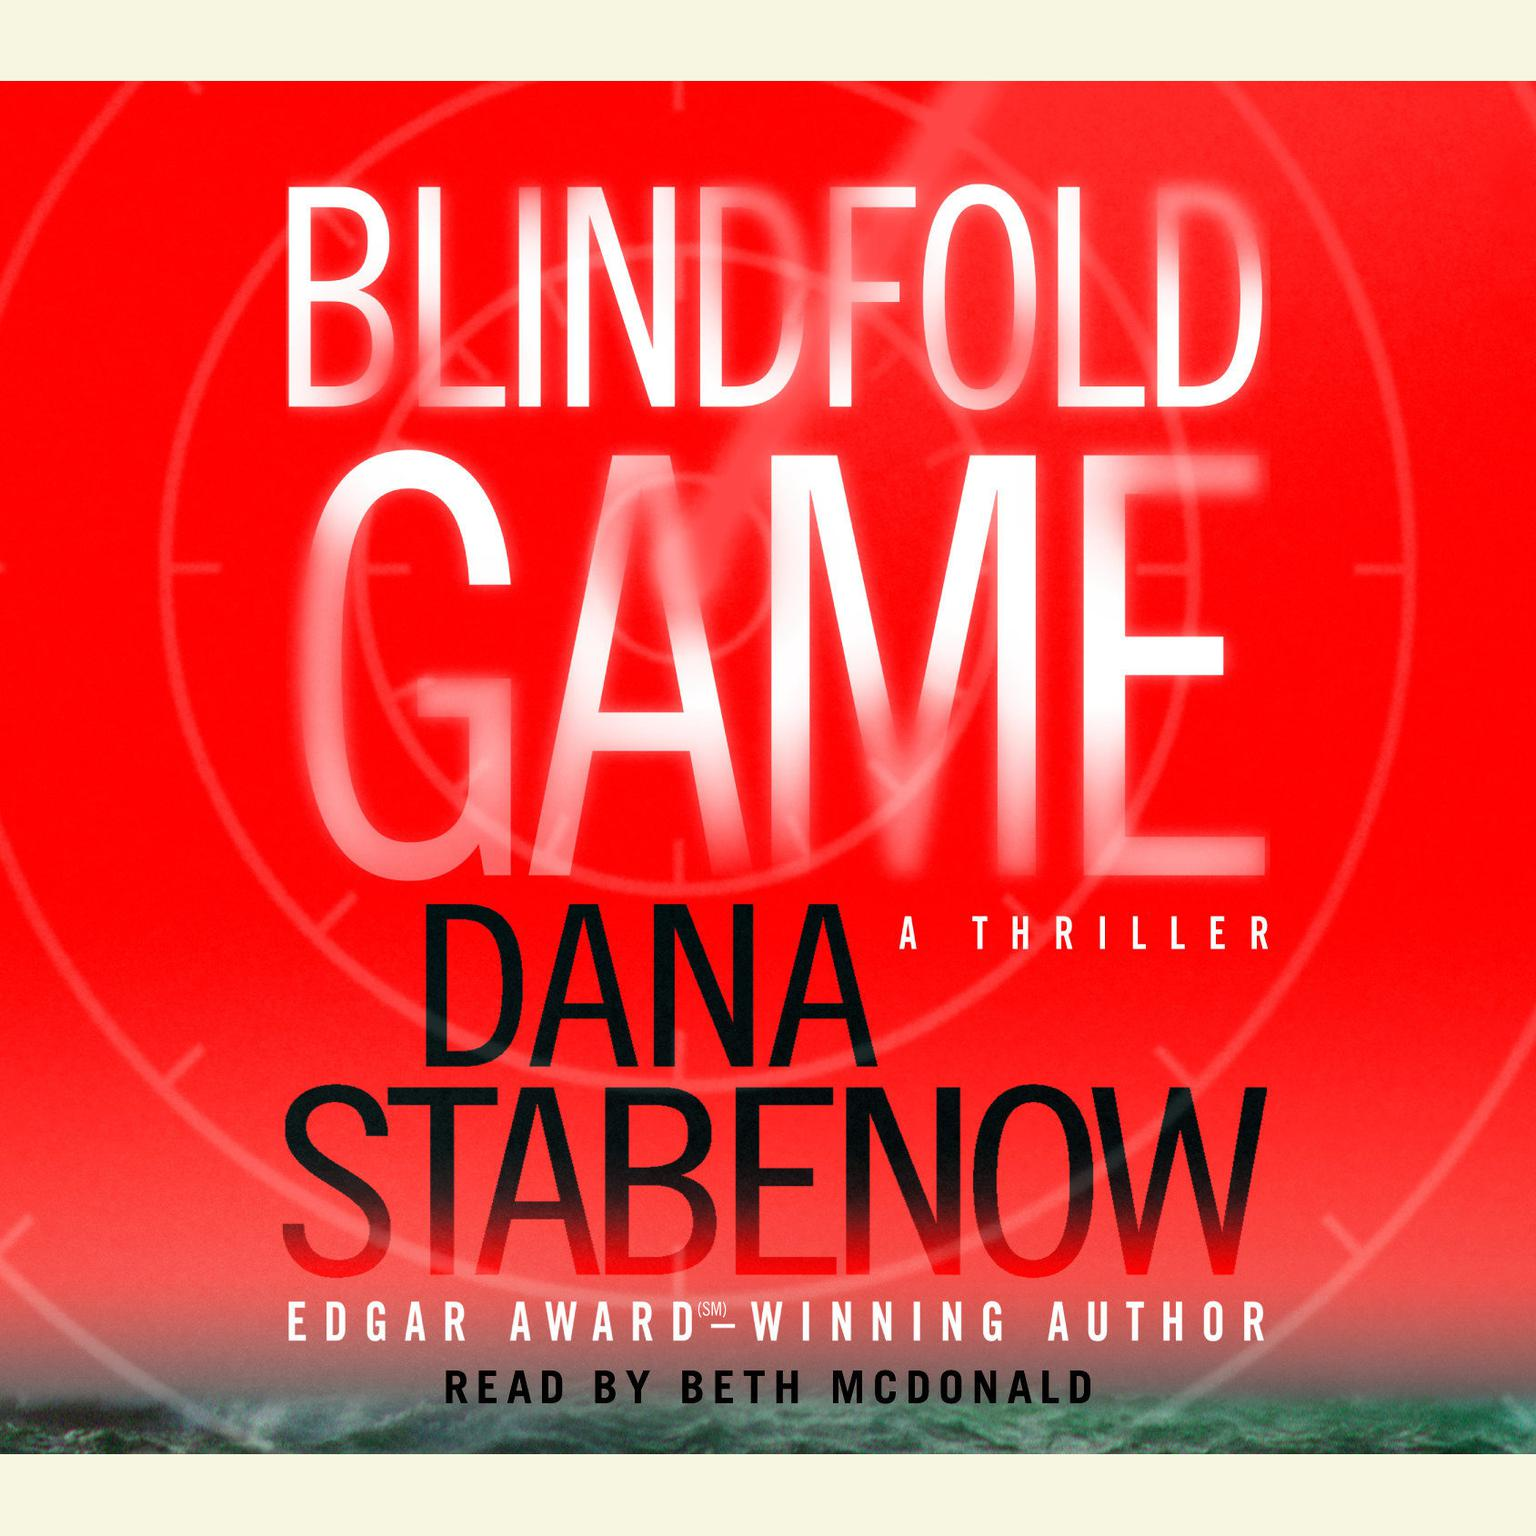 Printable Blindfold Game Audiobook Cover Art